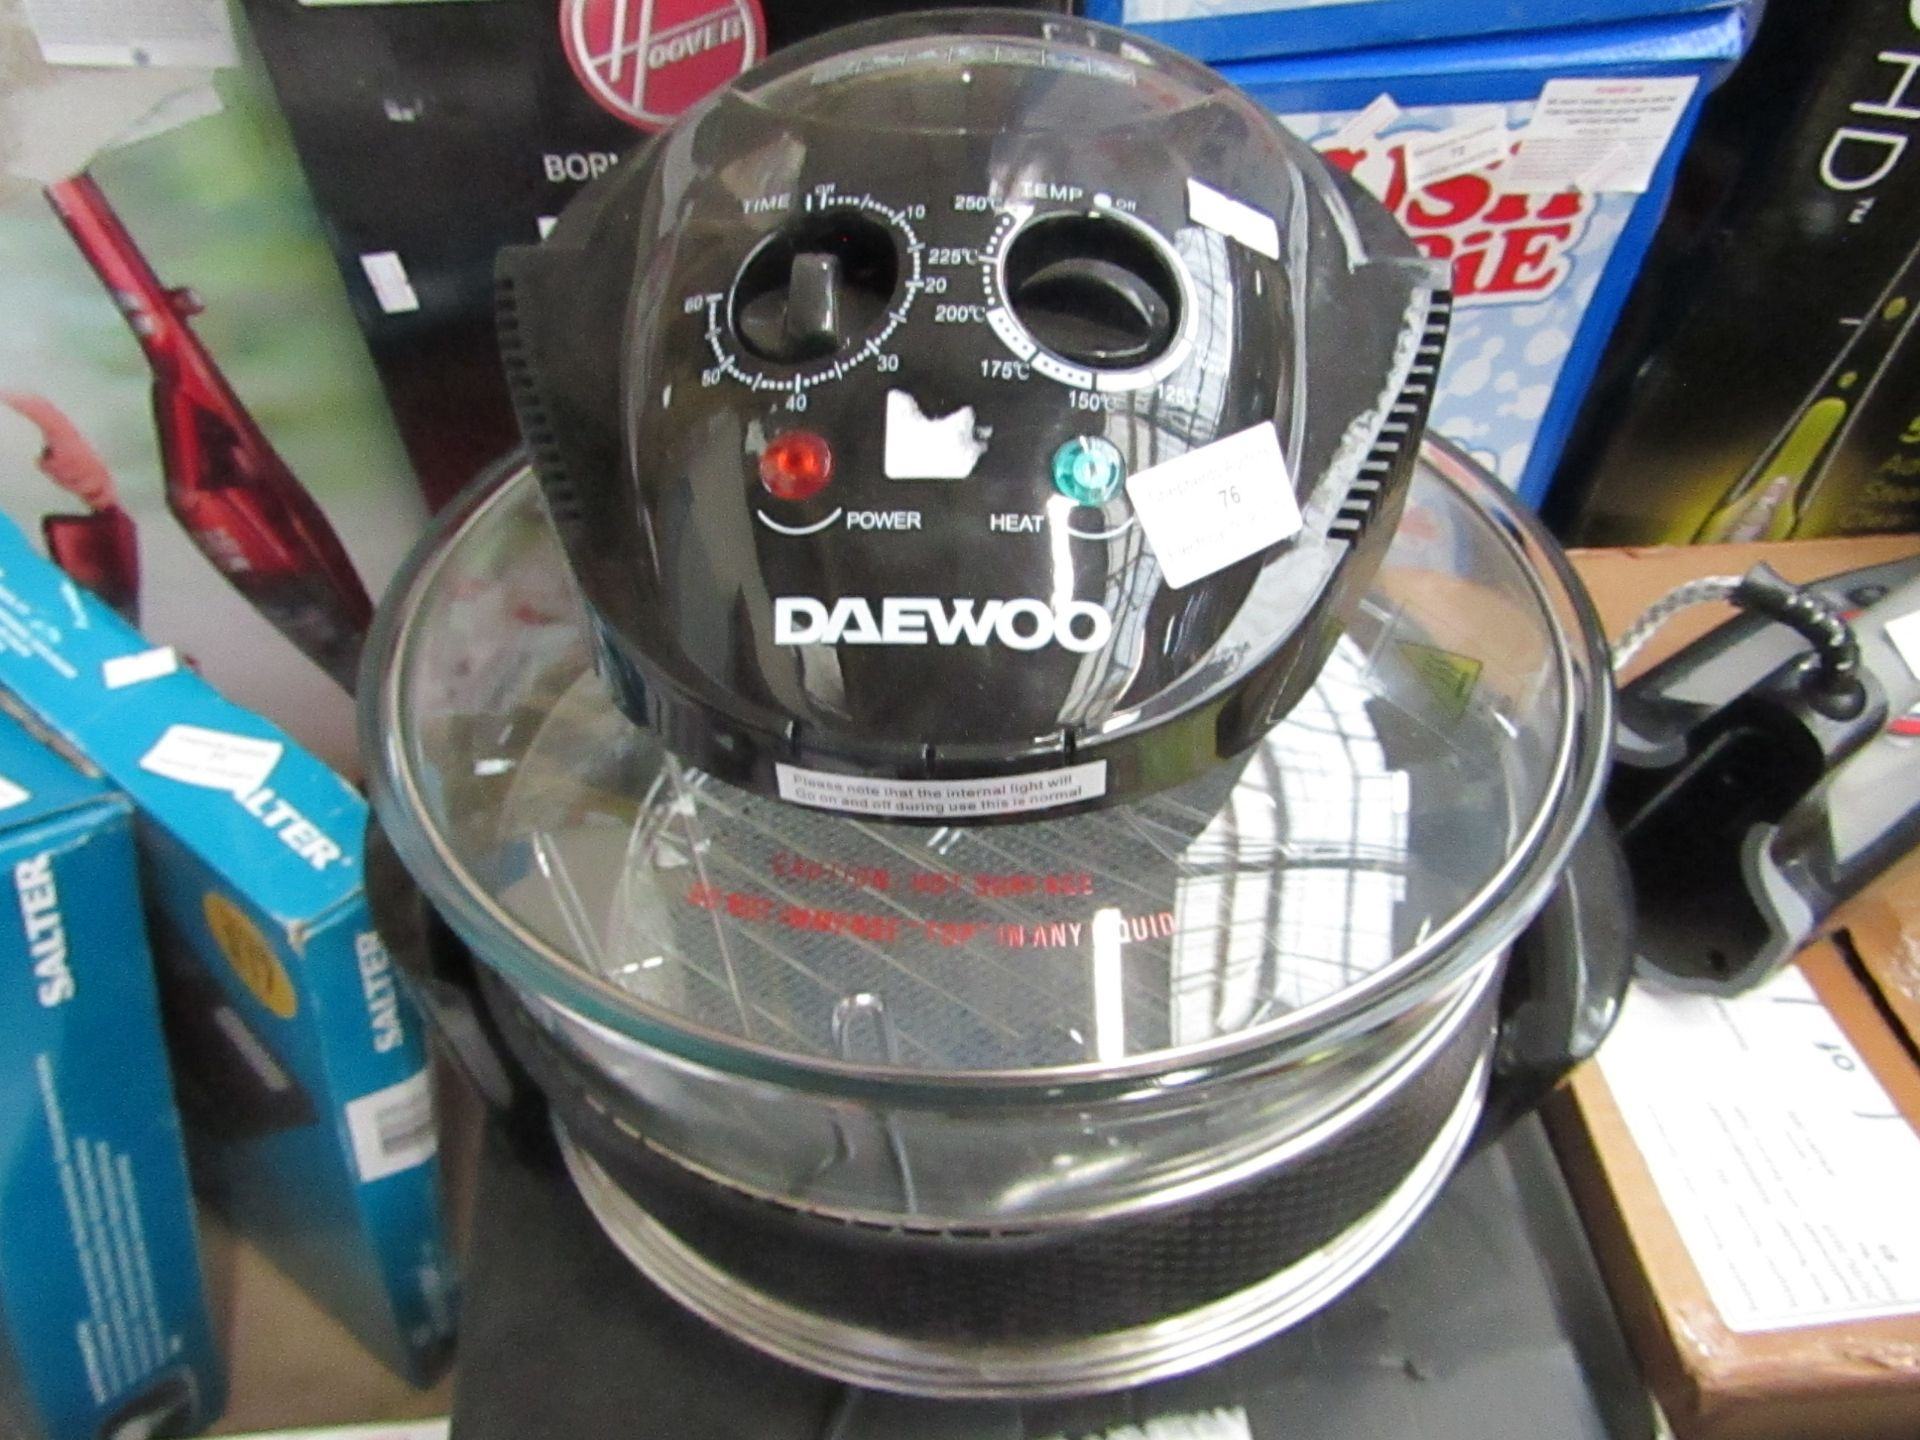 Lot 76 - Daewoo Electricals halogen air fryer, tested working and boxed.